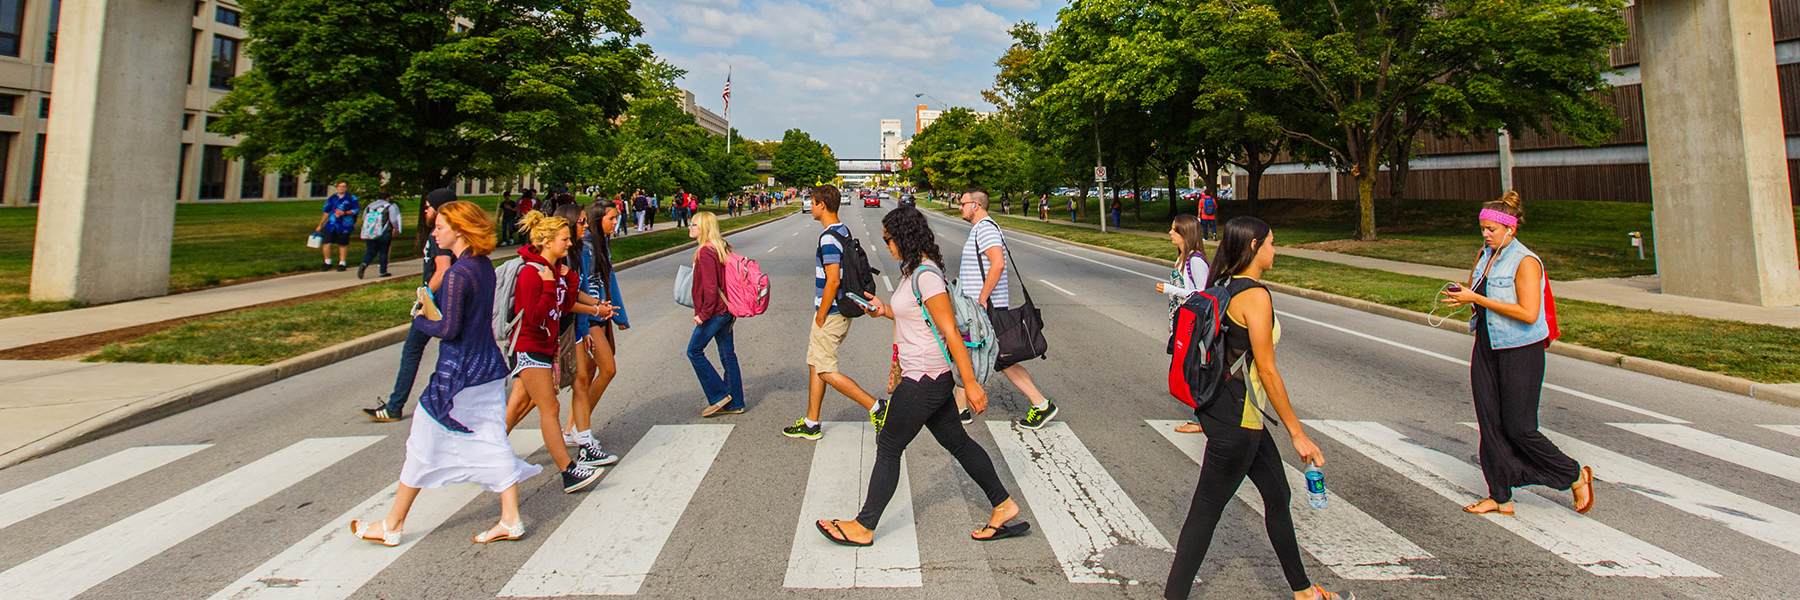 Students on campus walking across Michigan Street.